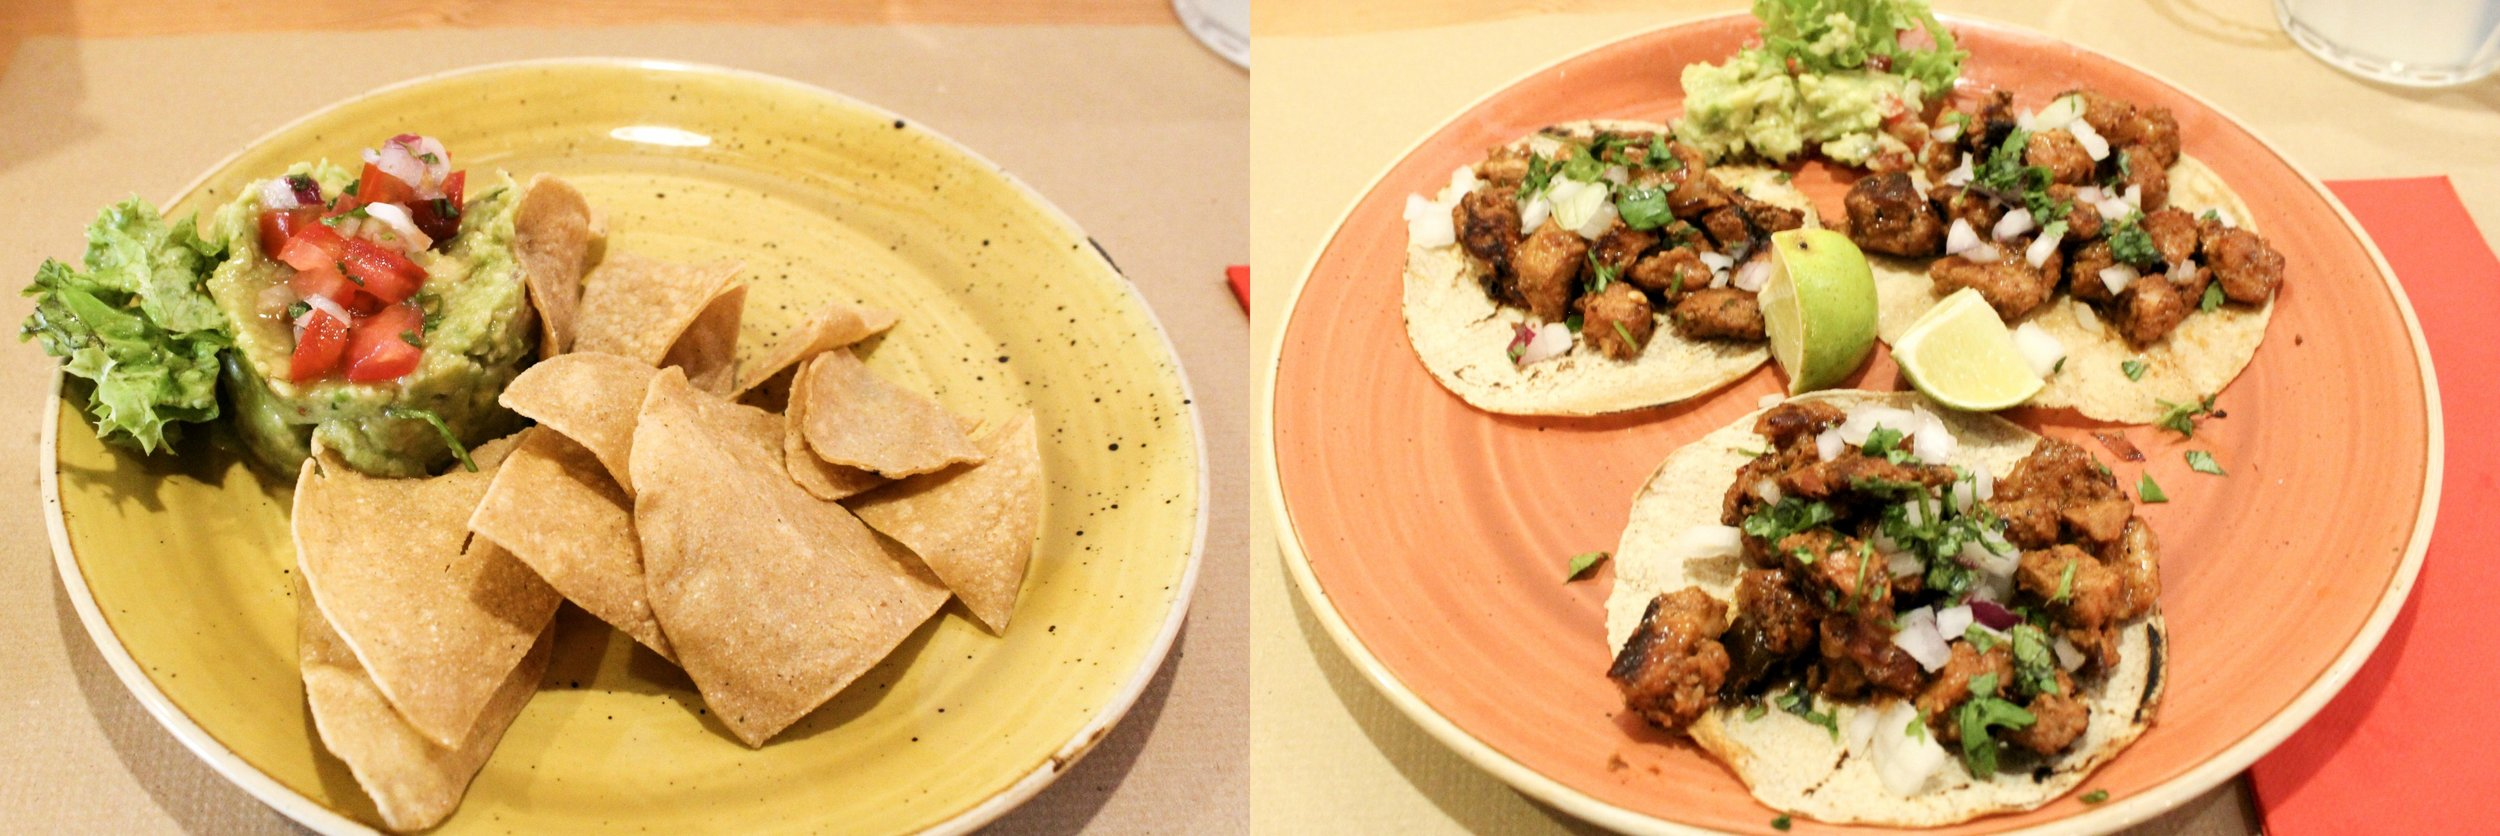 House made Guacamole & Chips and Trompo Tacos (pork)